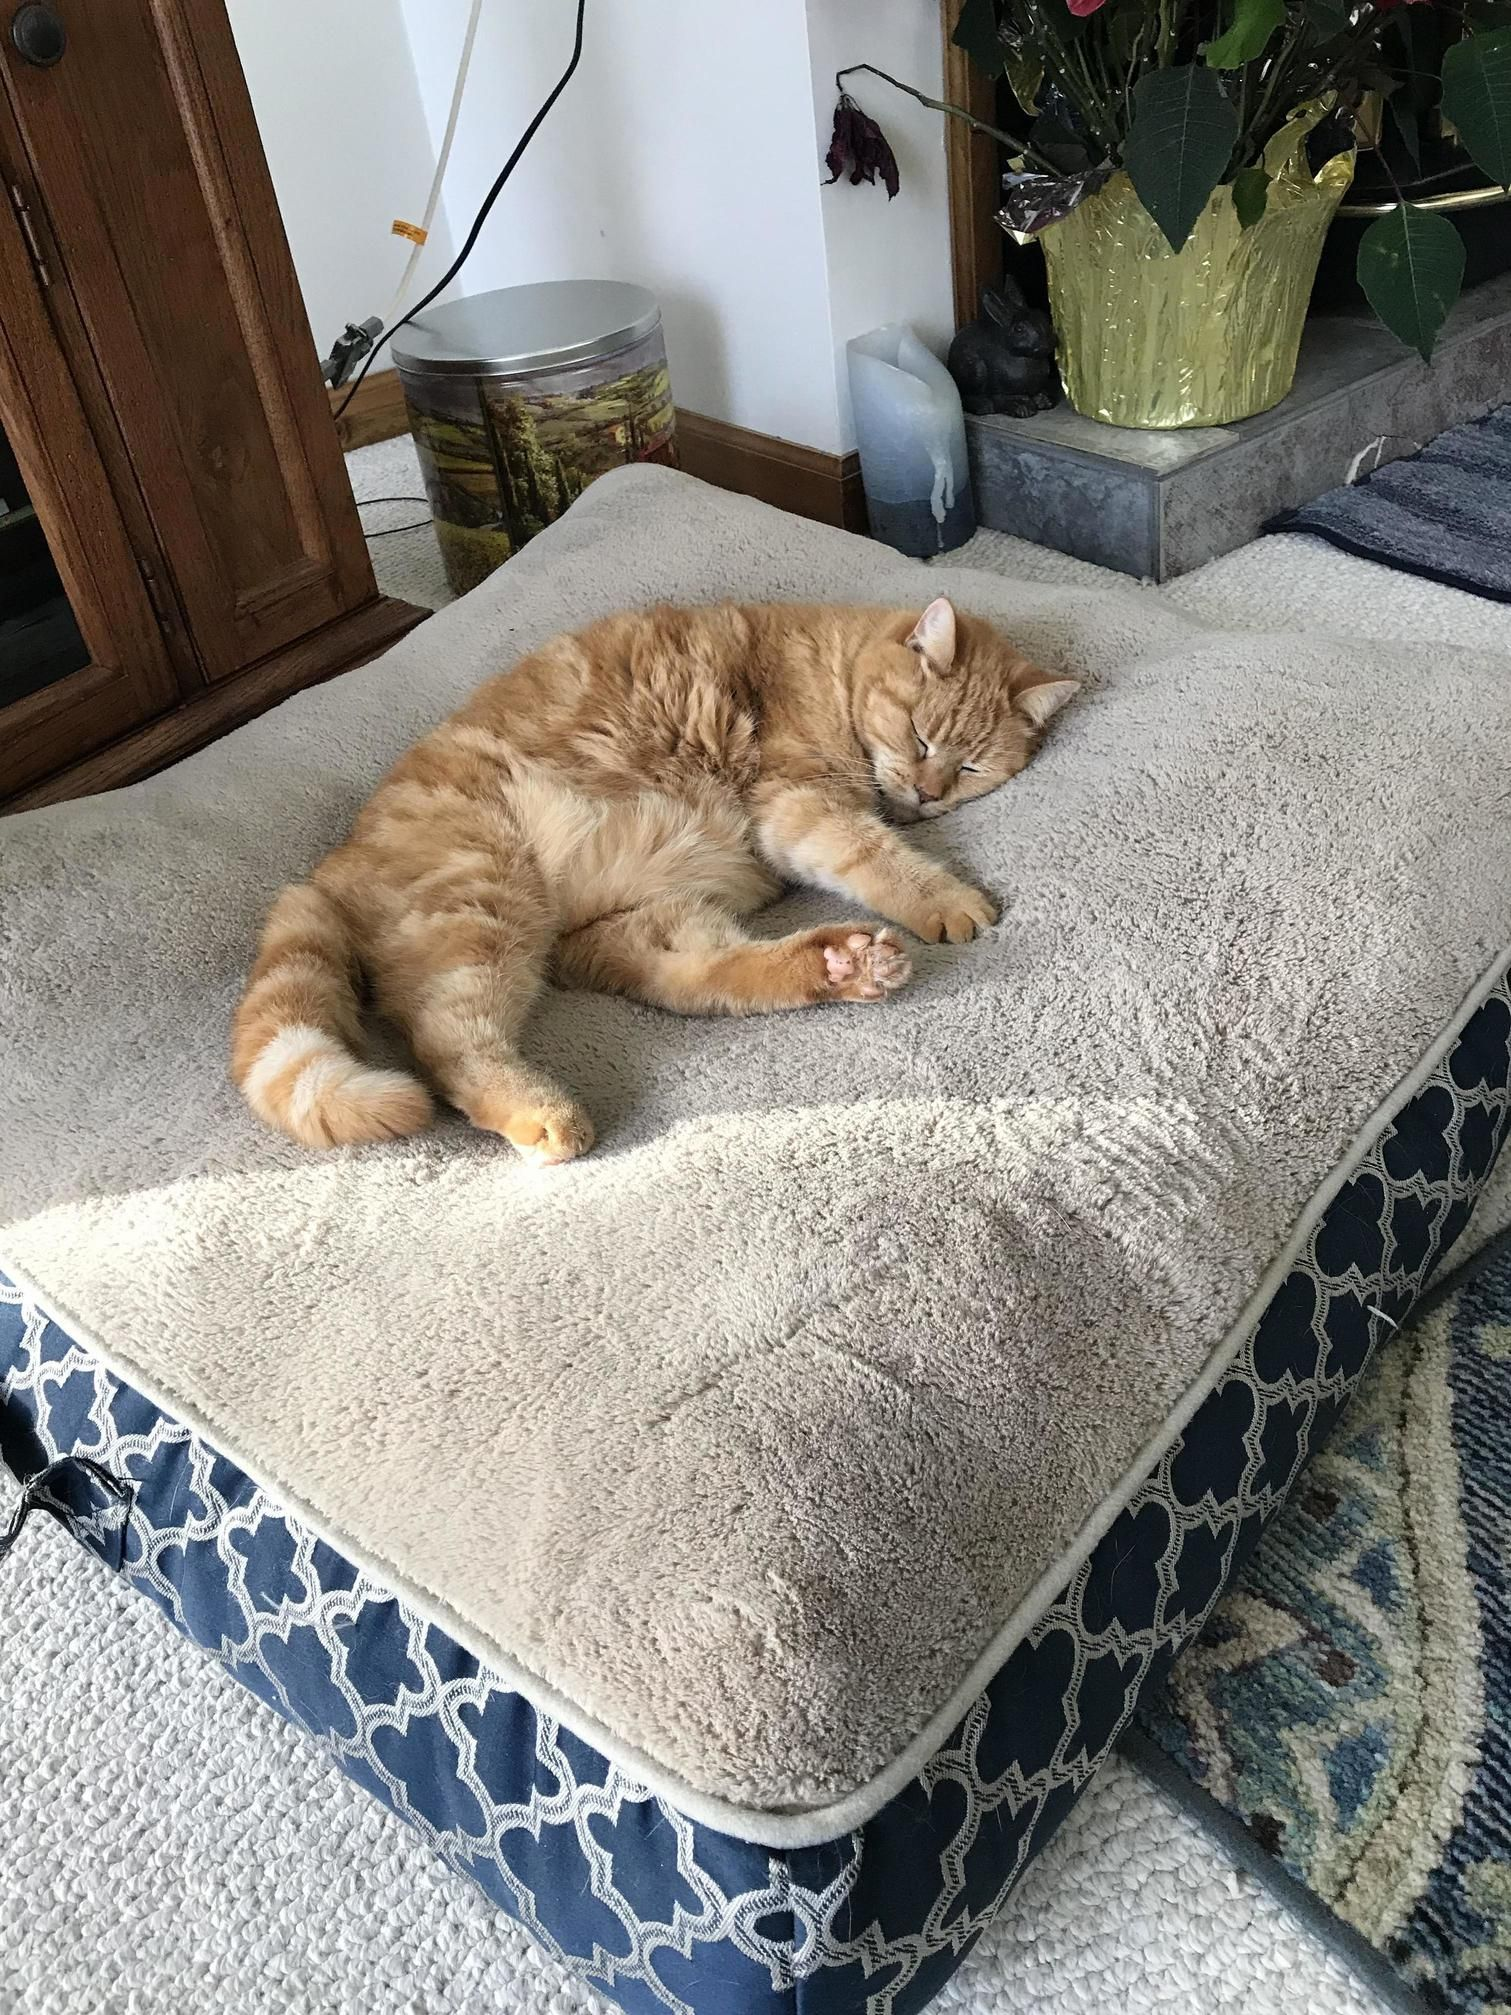 Sleeping On The Dog Bed Lol  Httpcutecatshqcomcats